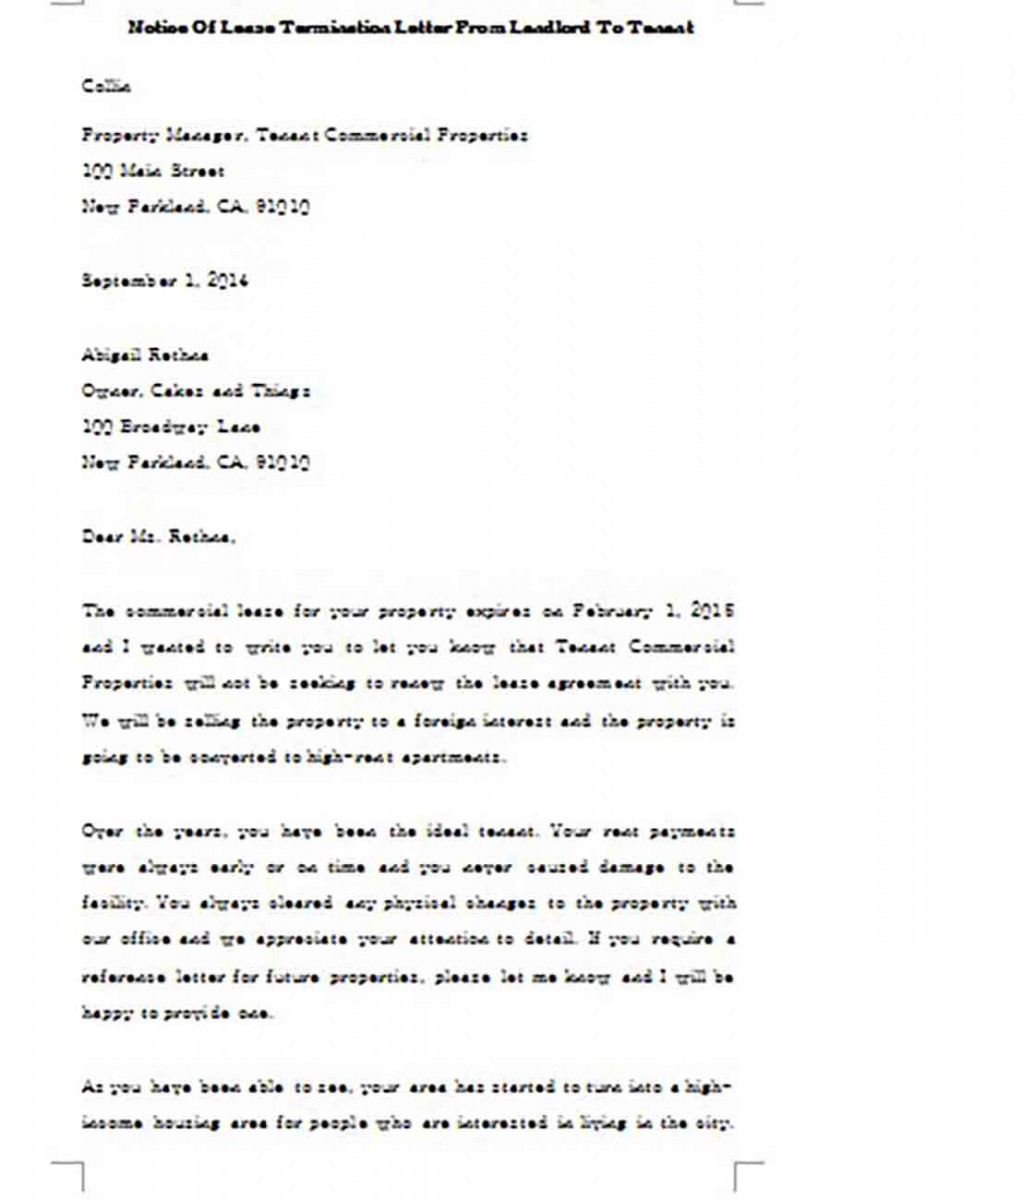 Notice of Lease Termination Letter From Landlord To Tenant Example